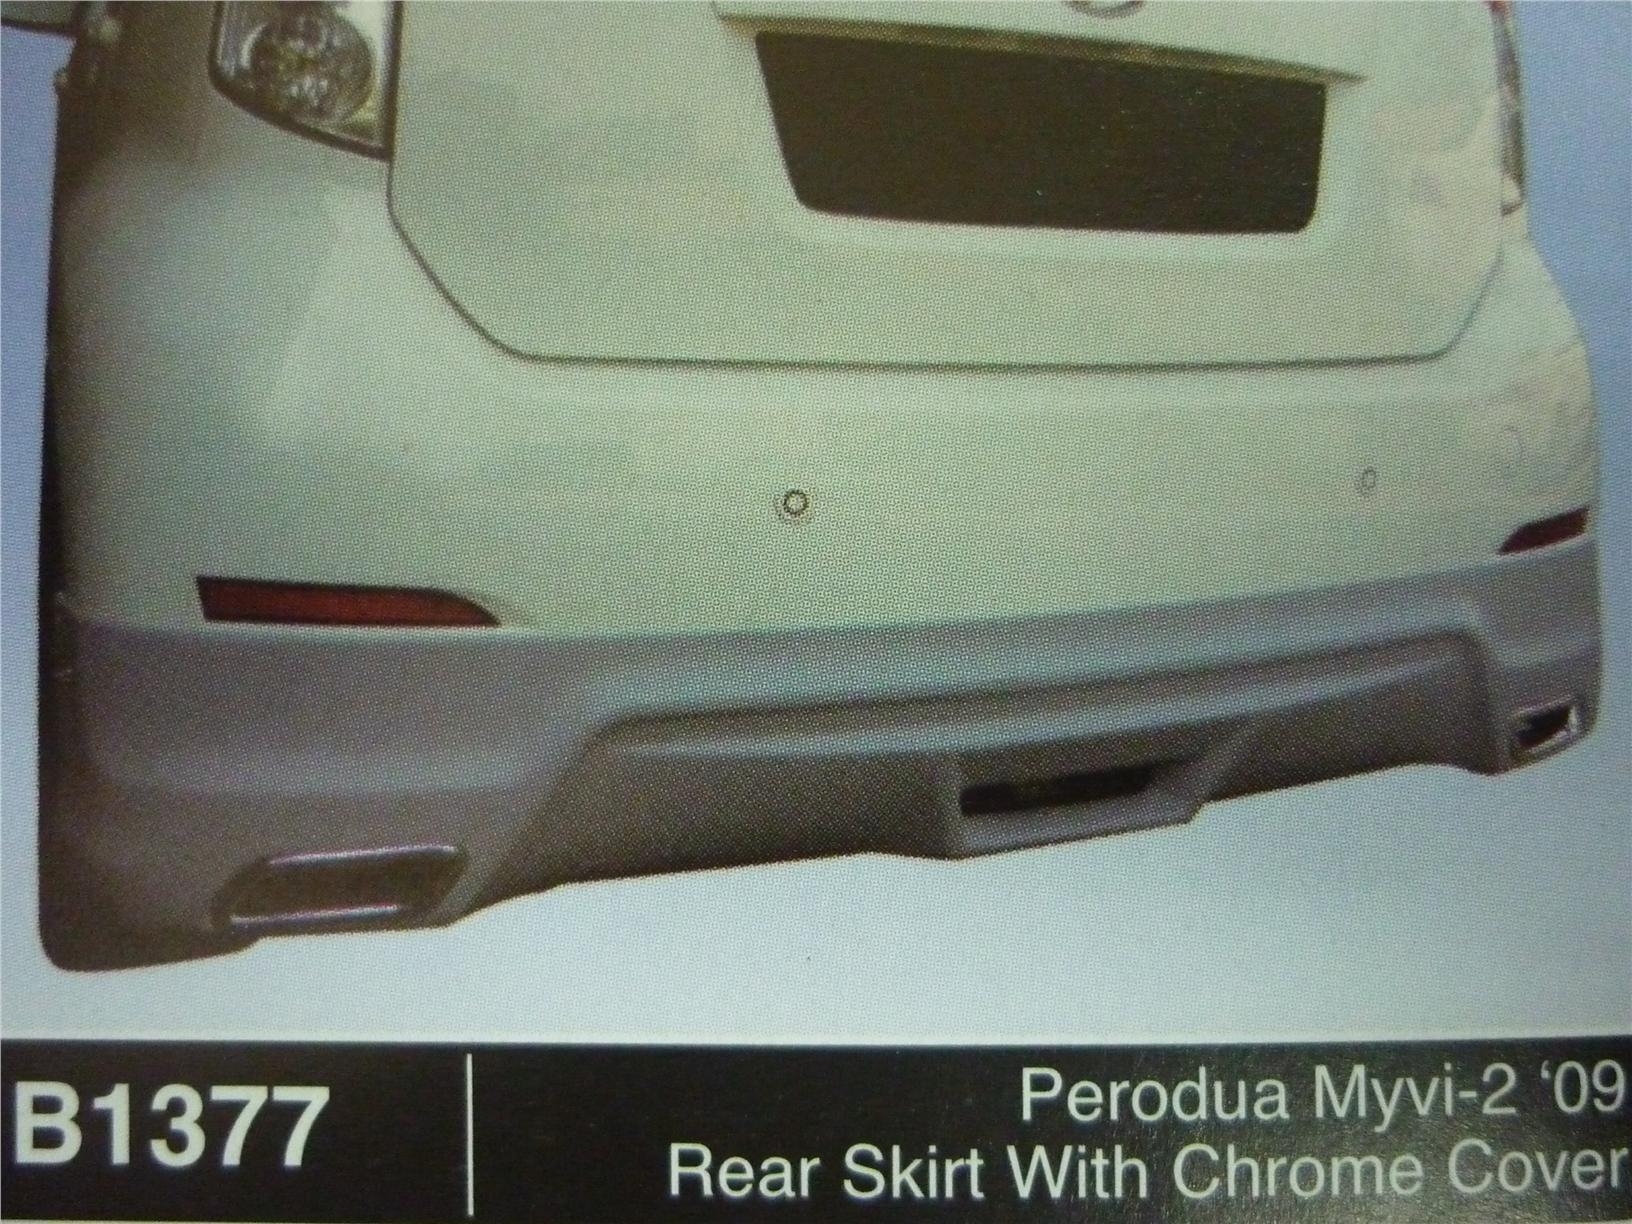 PERODUA MYVI 2 2009 REAR SKIRT WITH CHROME COVER B1377